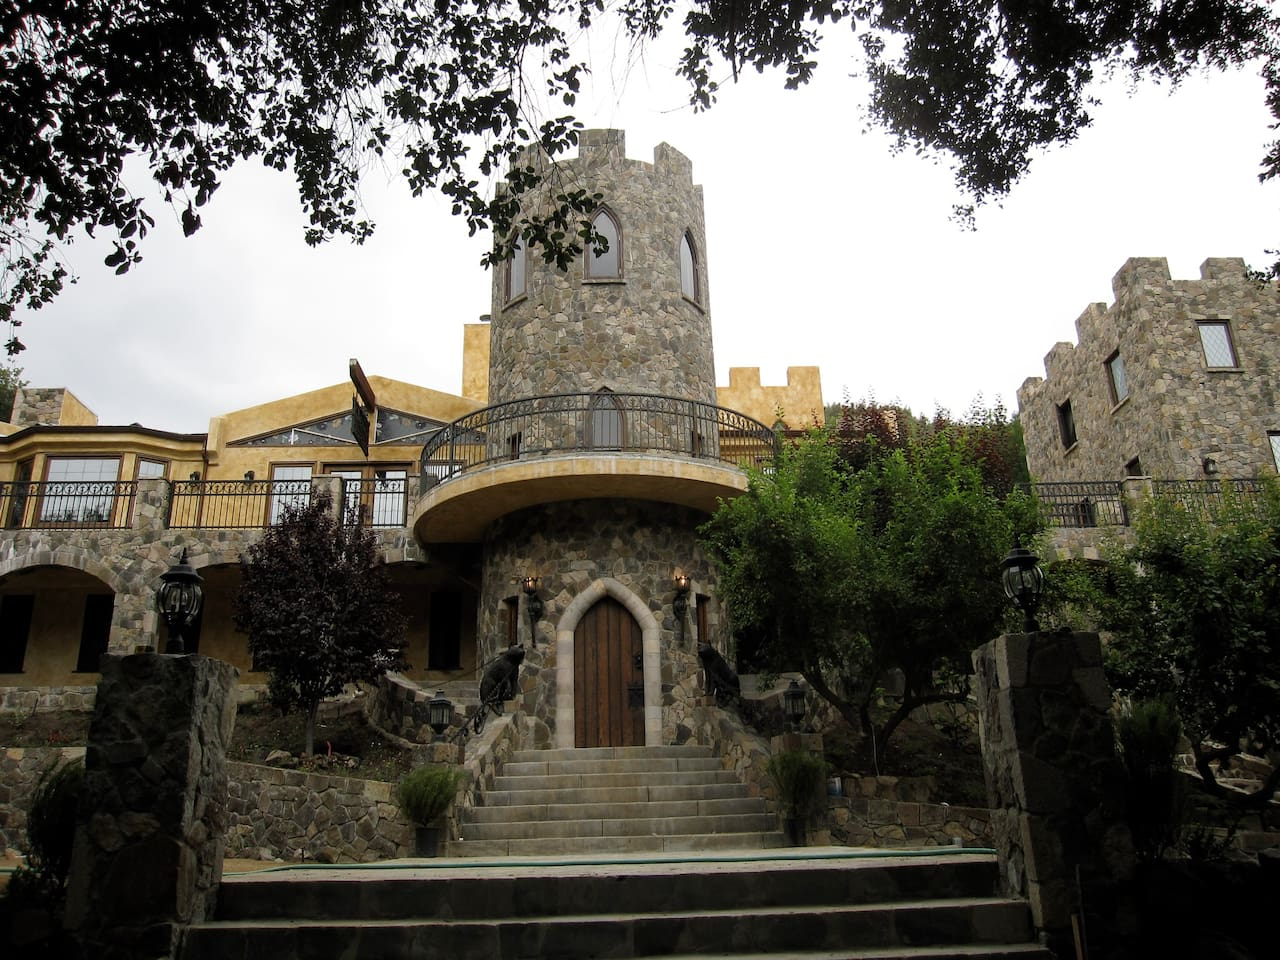 Every dream of staying in a Castle near Malibu, CA? The stone tower on the right is yours for the night!